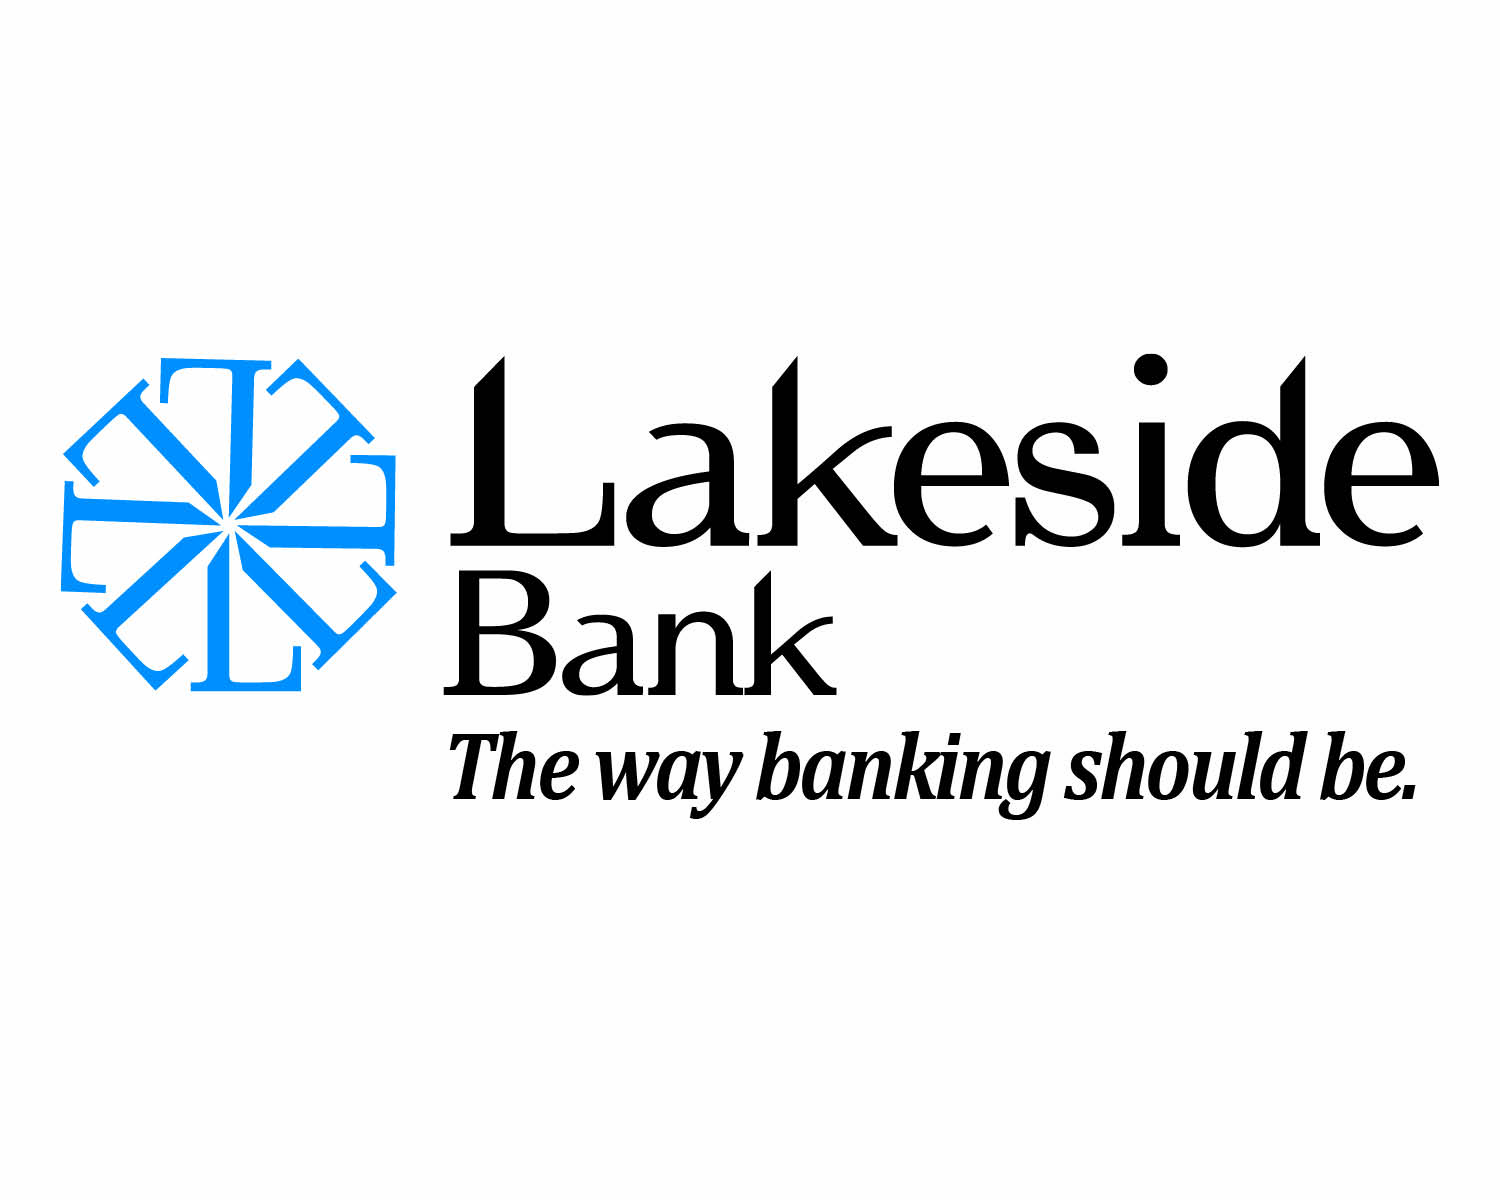 lakeside_logo_original.jpg